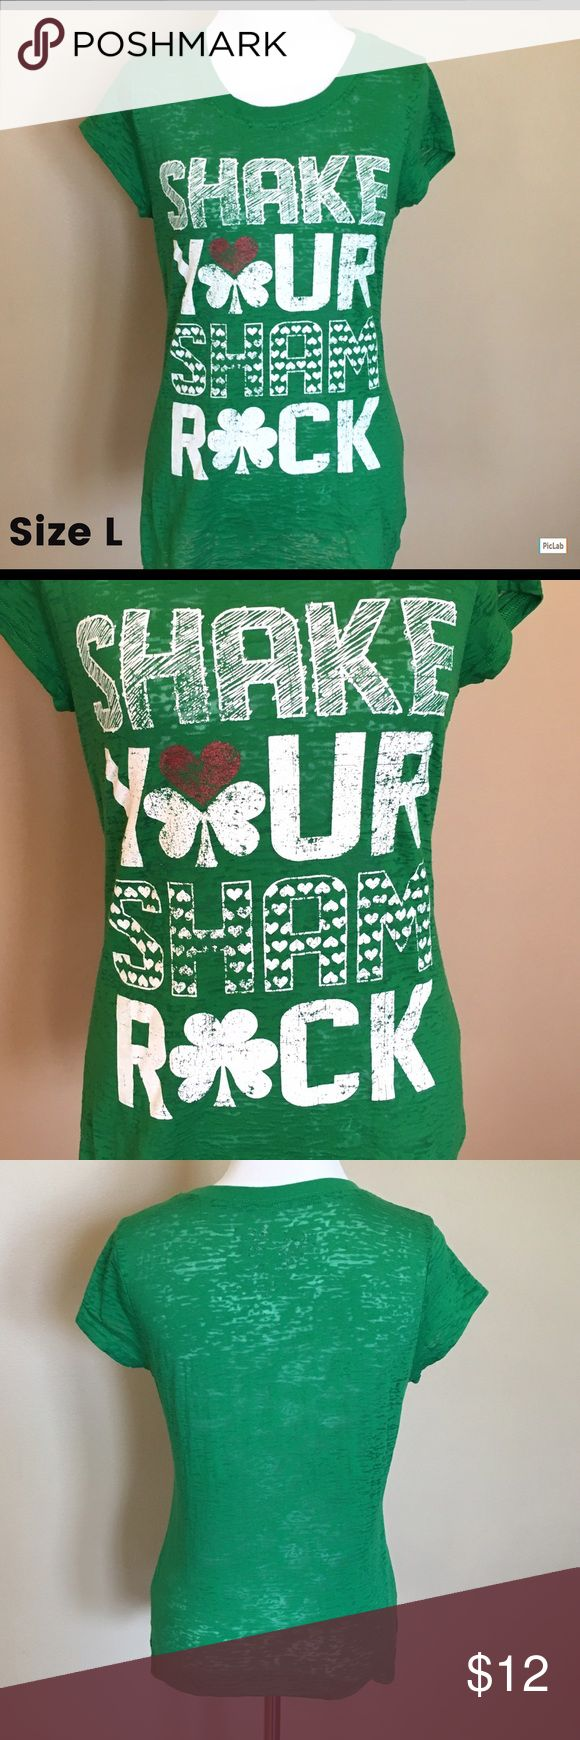 "Rocker Girl ""Shake Your Sham Rock"" T-Shirt Size L Excellent Condition! St. Patrick's Day/Shamrock Shirt Rocker Girl Tops Tees - Short Sleeve"